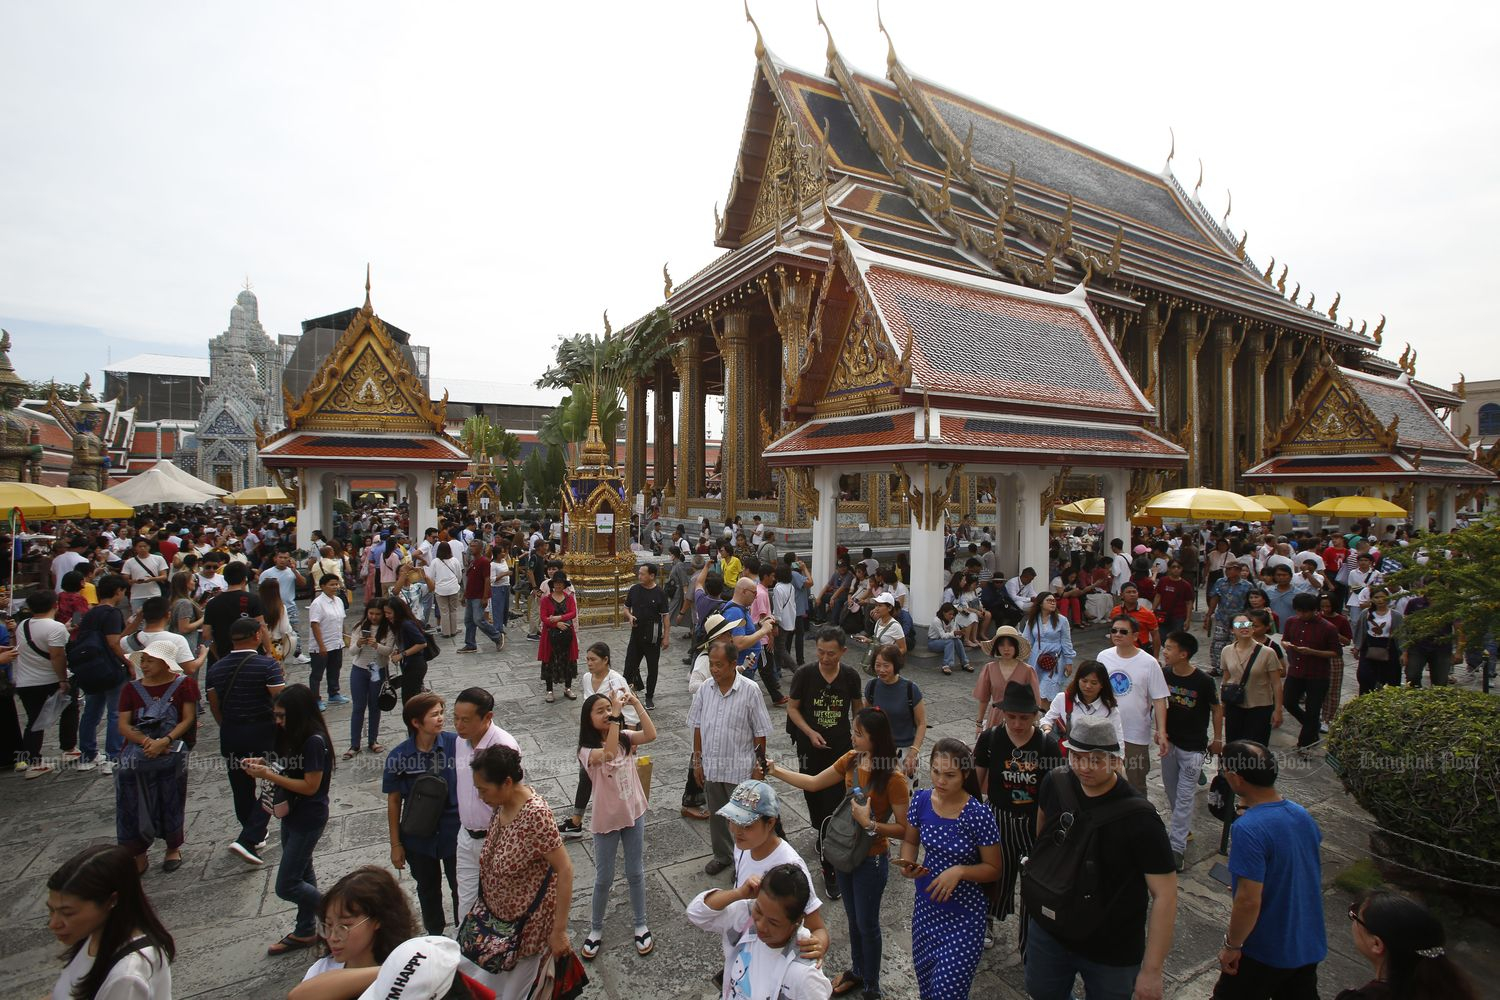 Tourists visit Wat Phra Si Rattana Satsadaram in Bangkok on Jan 1. (Photo by Pornprom Sattrabhaya)